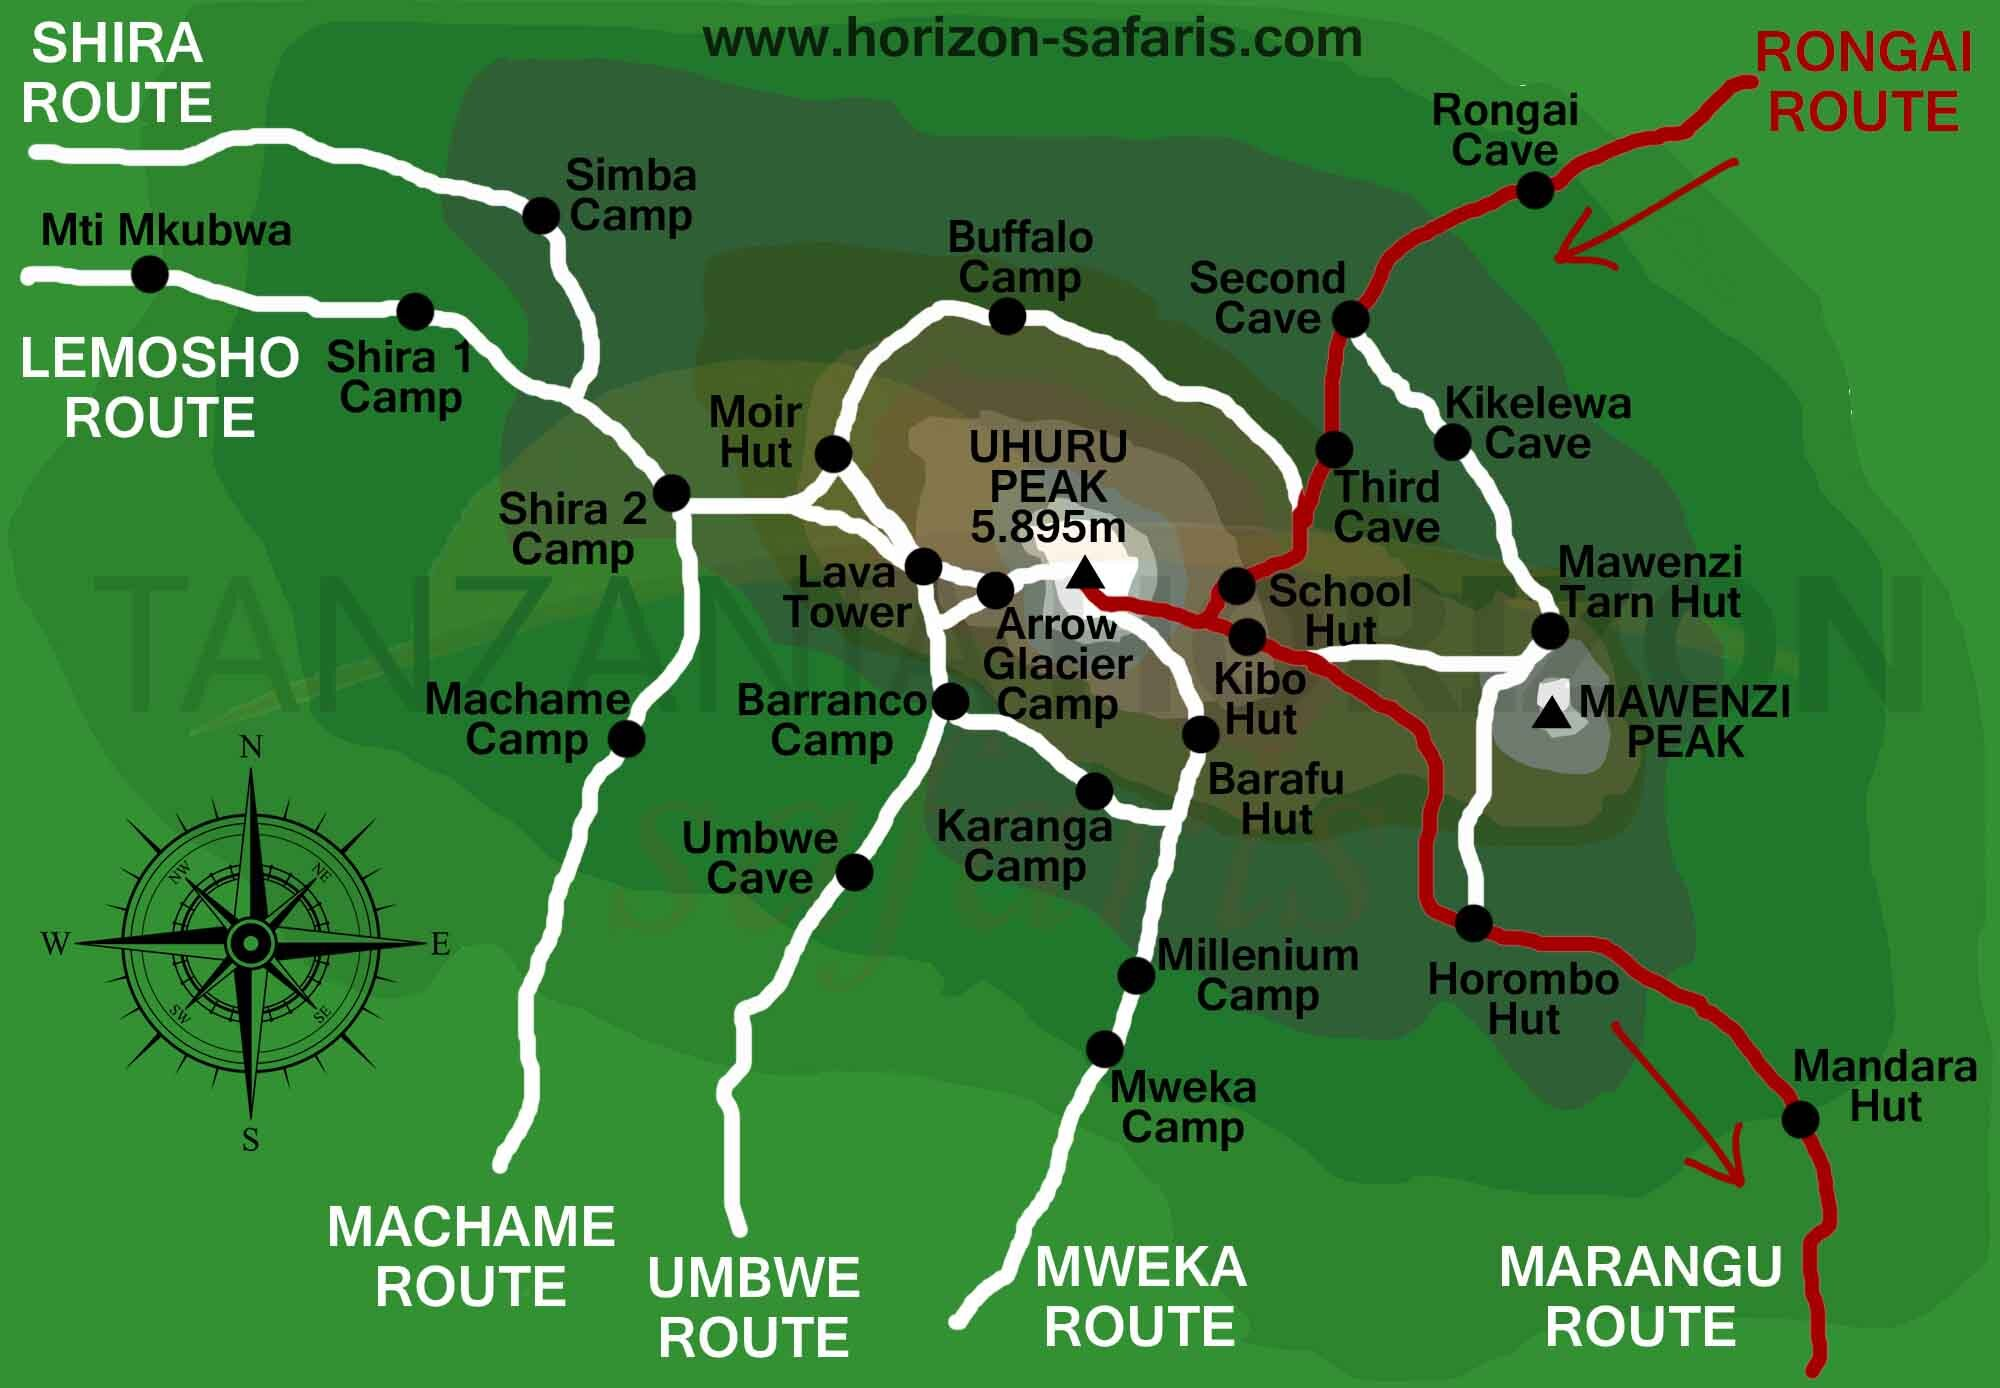 Rongai Route.jpg